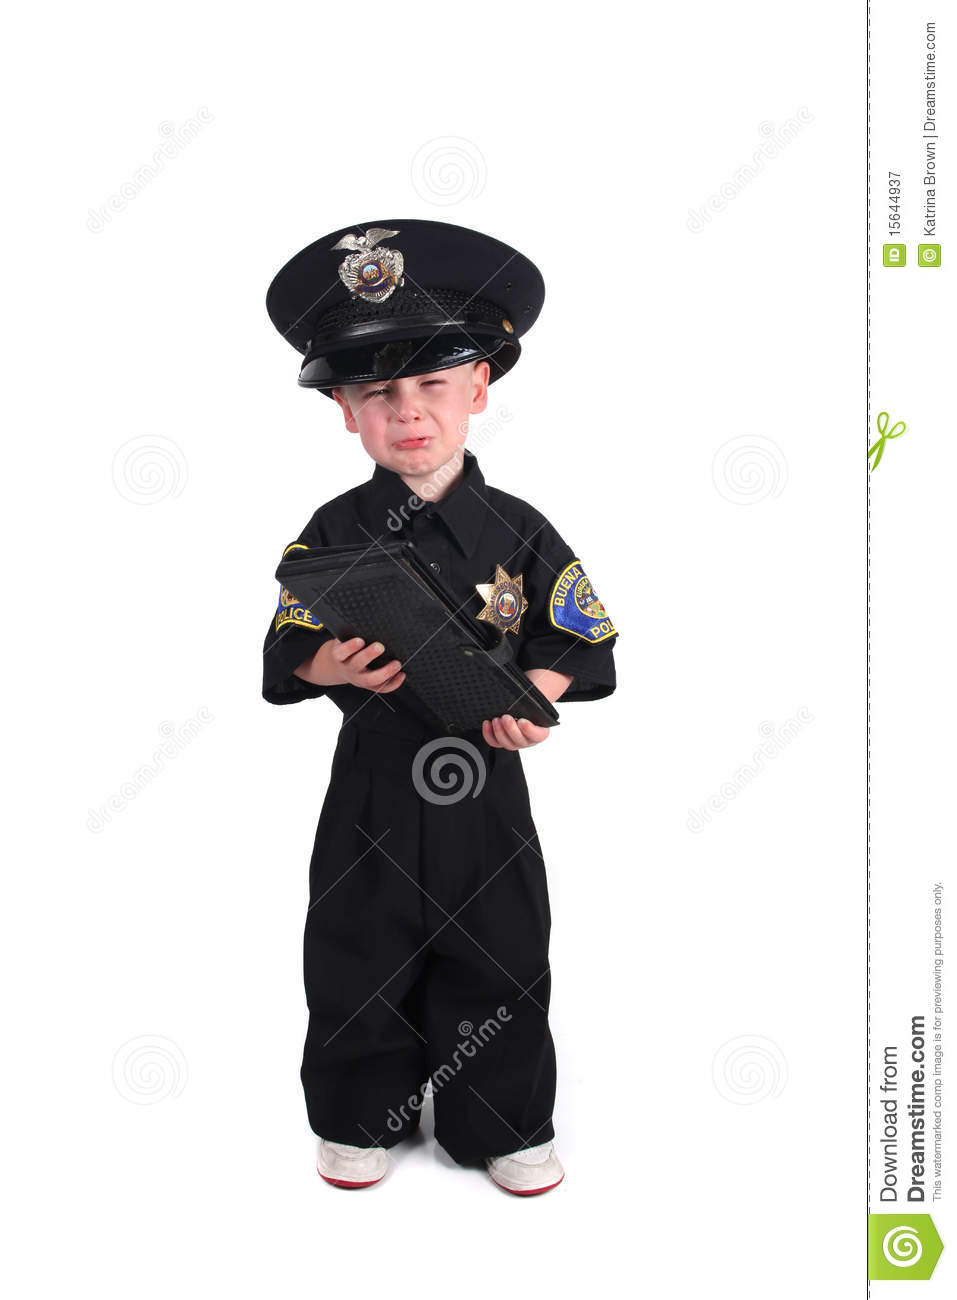 Unhappy Police Officer Holding a Ticket Book